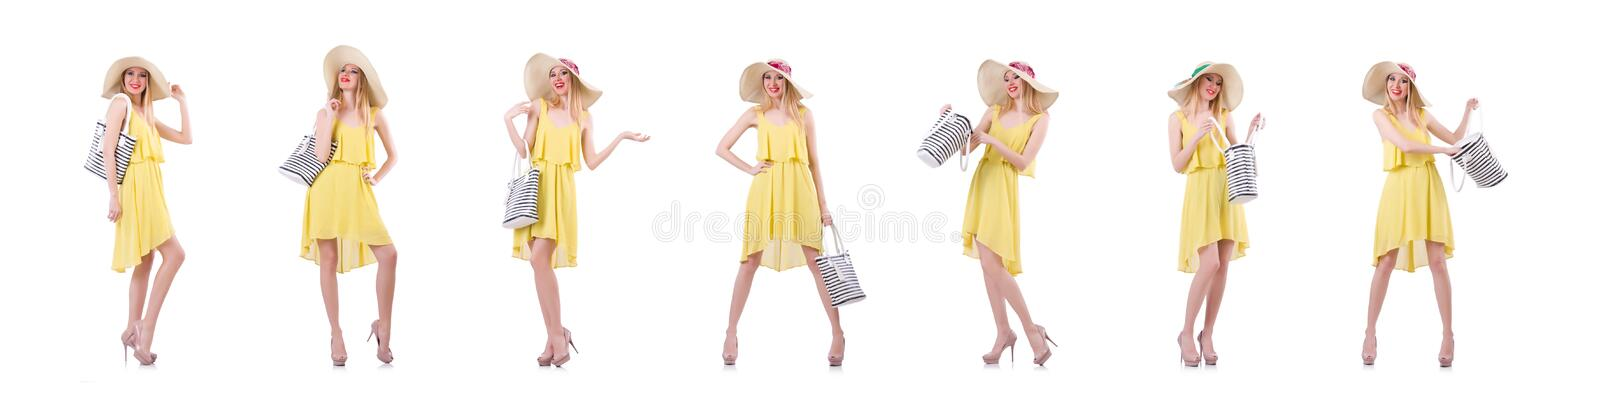 Young woman in summer clothing royalty free stock photo